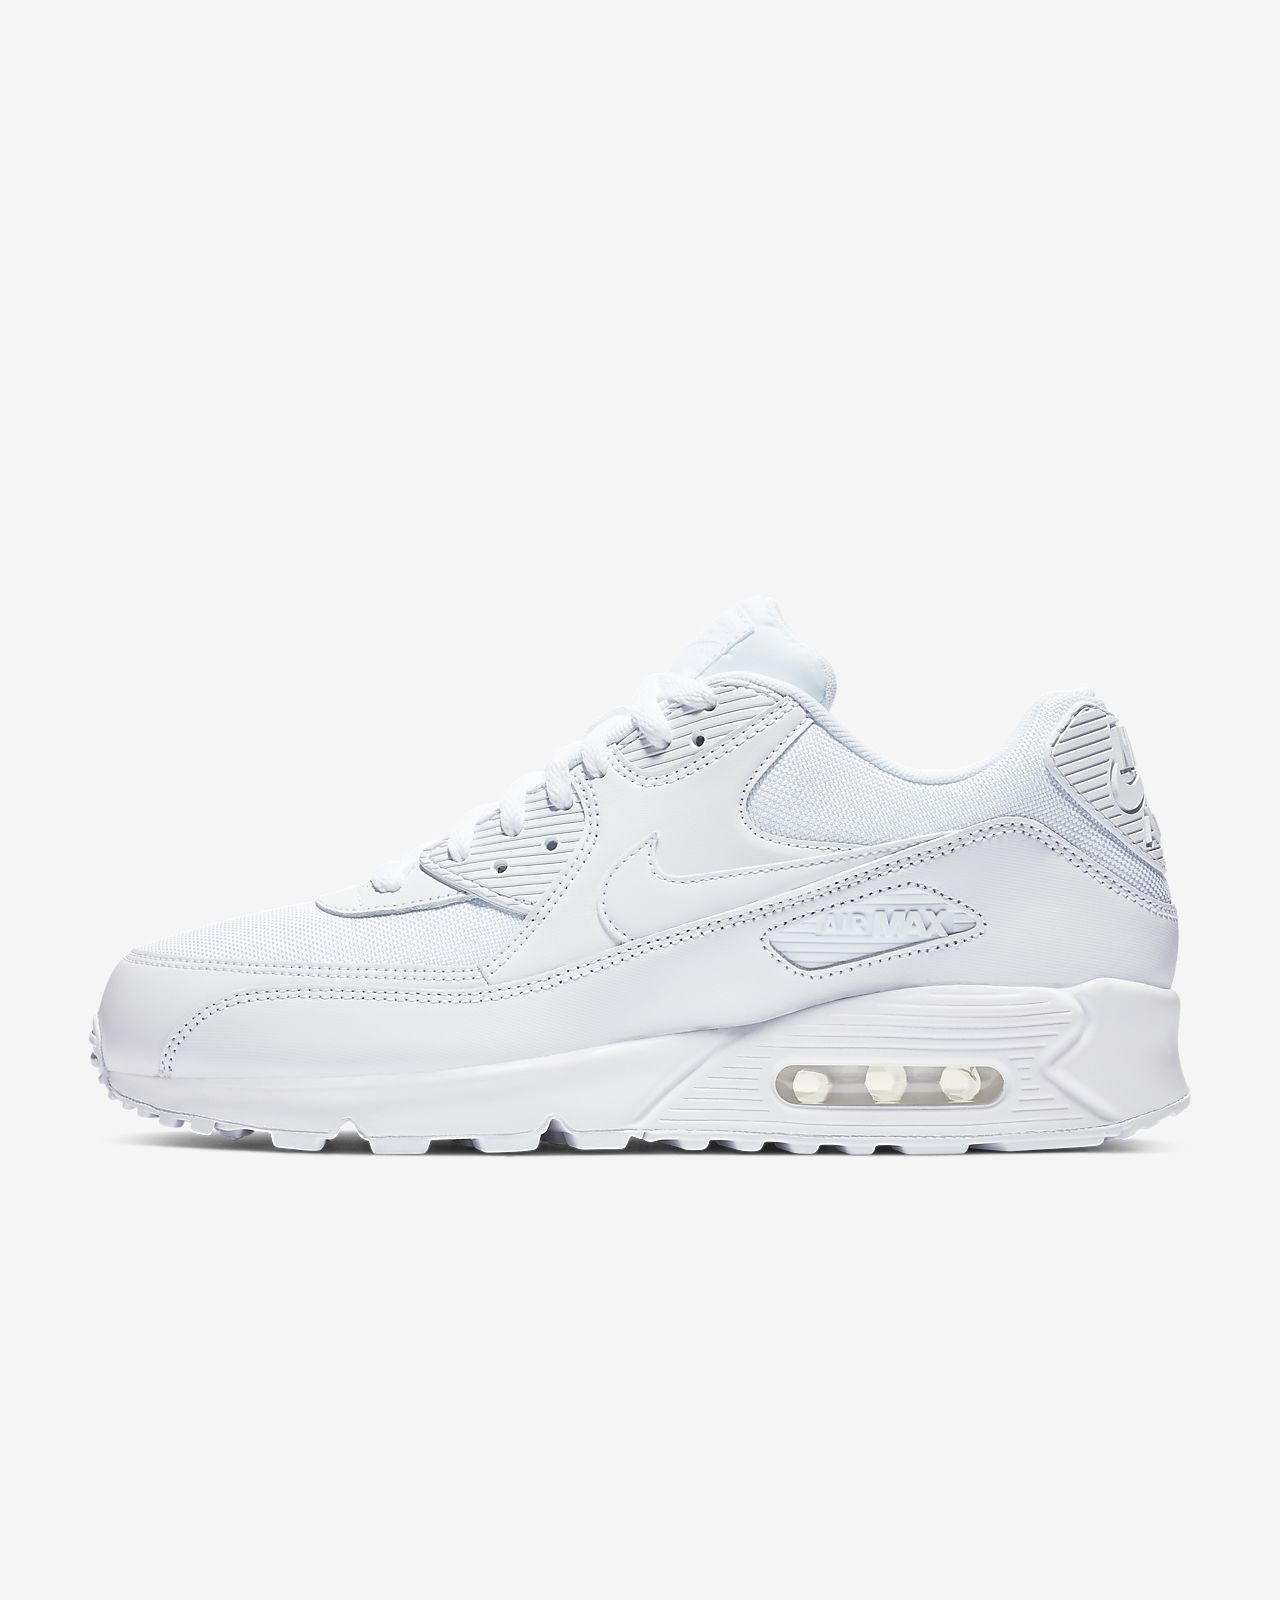 dbf7dd4d6a Nike Air Max 90 Essential Men's Shoe. Nike.com AU